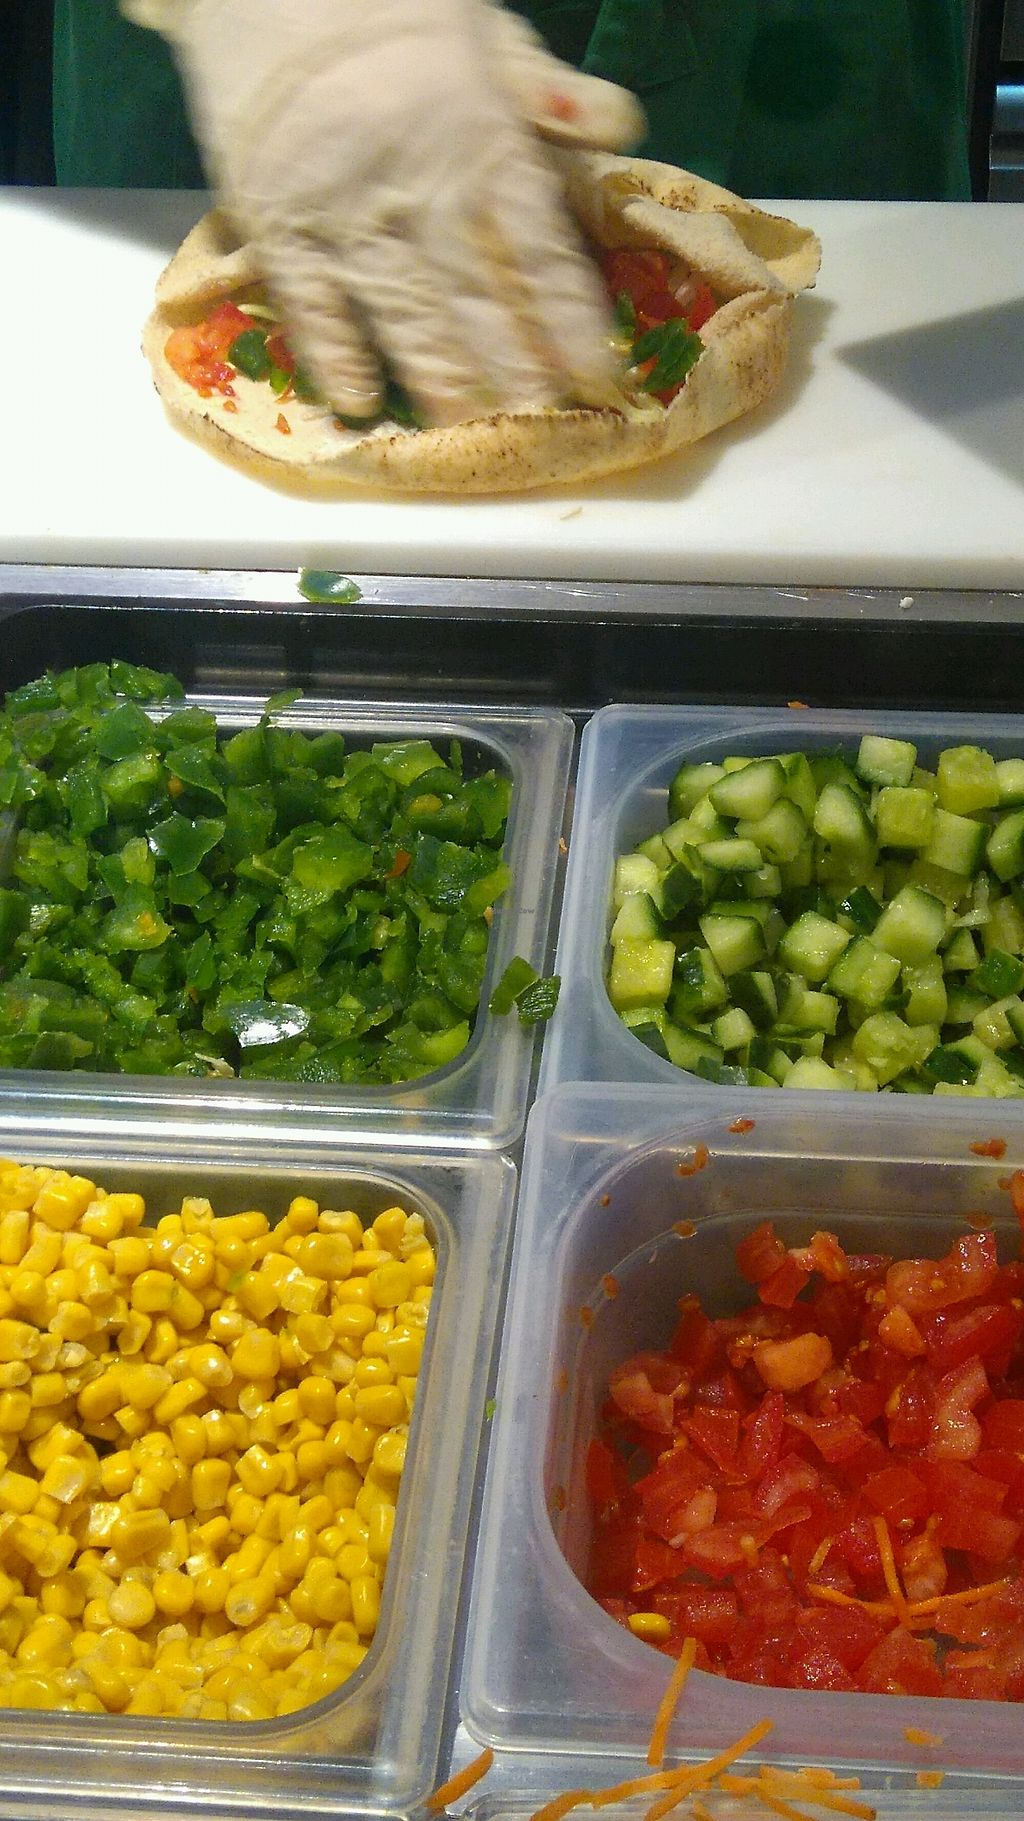 "Photo of Pita Pit  by <a href=""/members/profile/MlleCarine"">MlleCarine</a> <br/>veggie bonanza <br/> February 8, 2018  - <a href='/contact/abuse/image/110599/356461'>Report</a>"